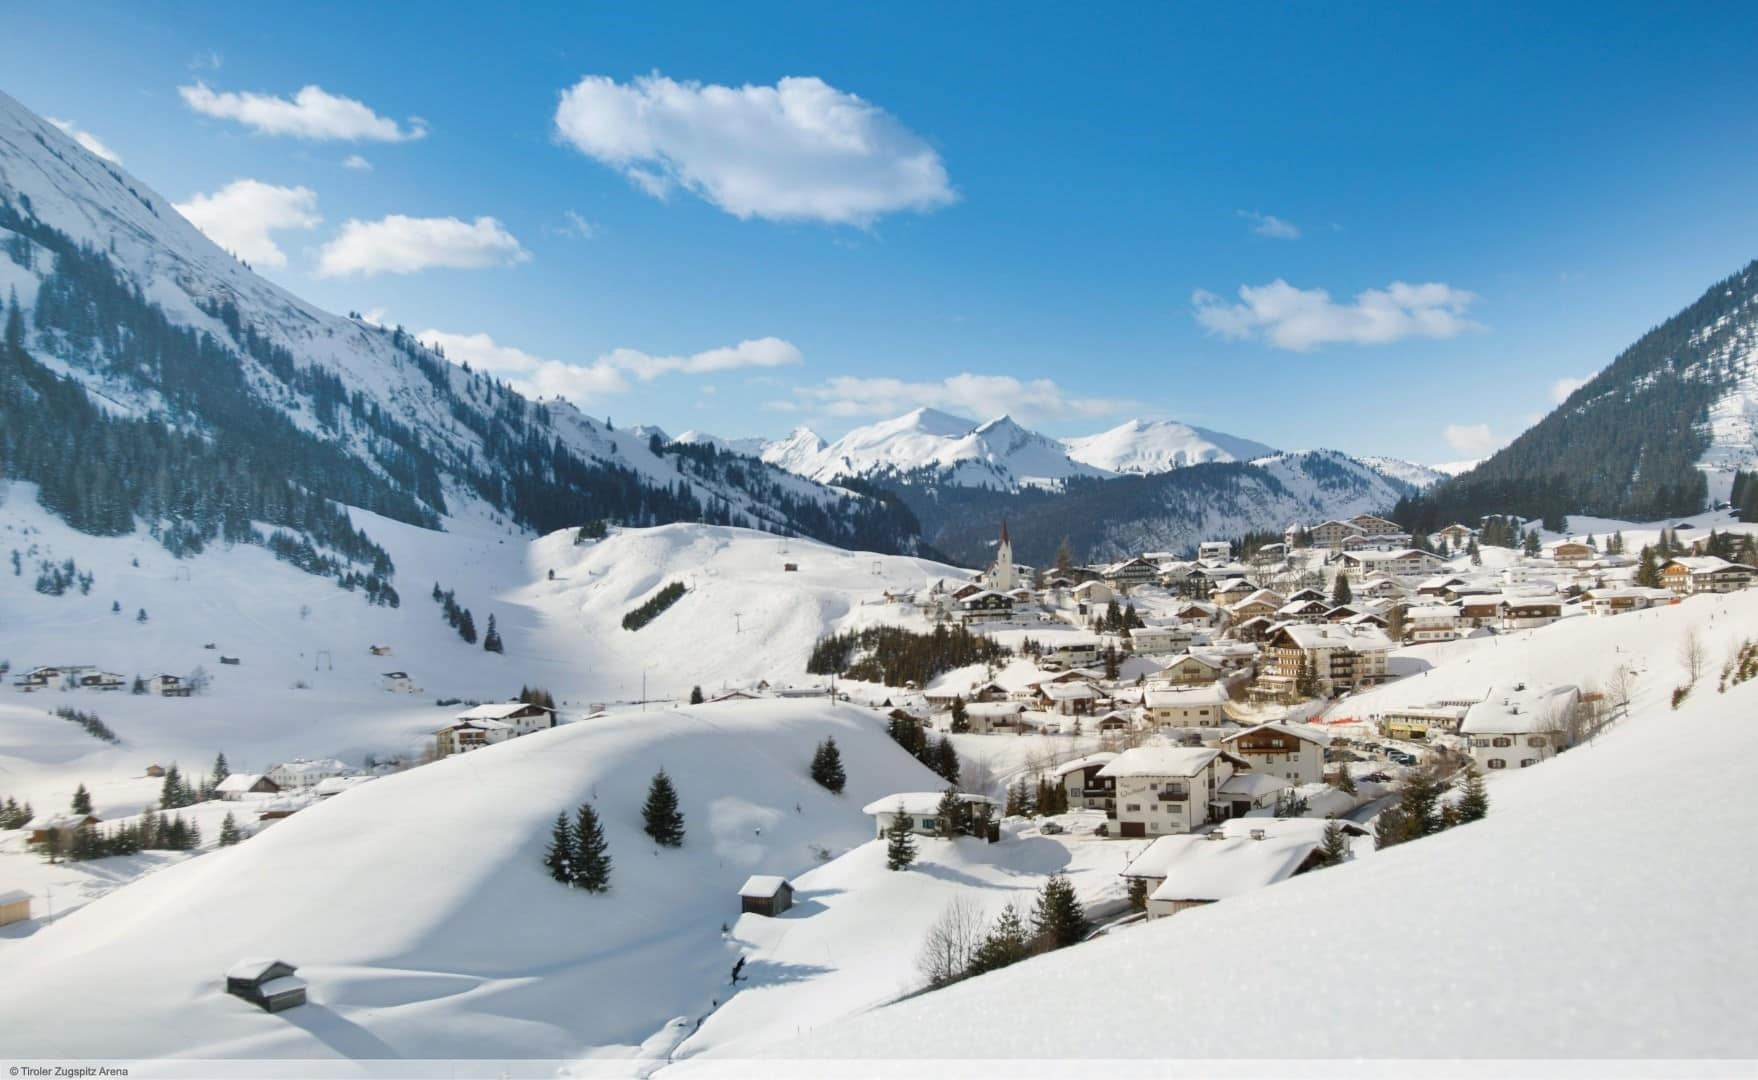 wintersport en aanbiedingen in Berwang